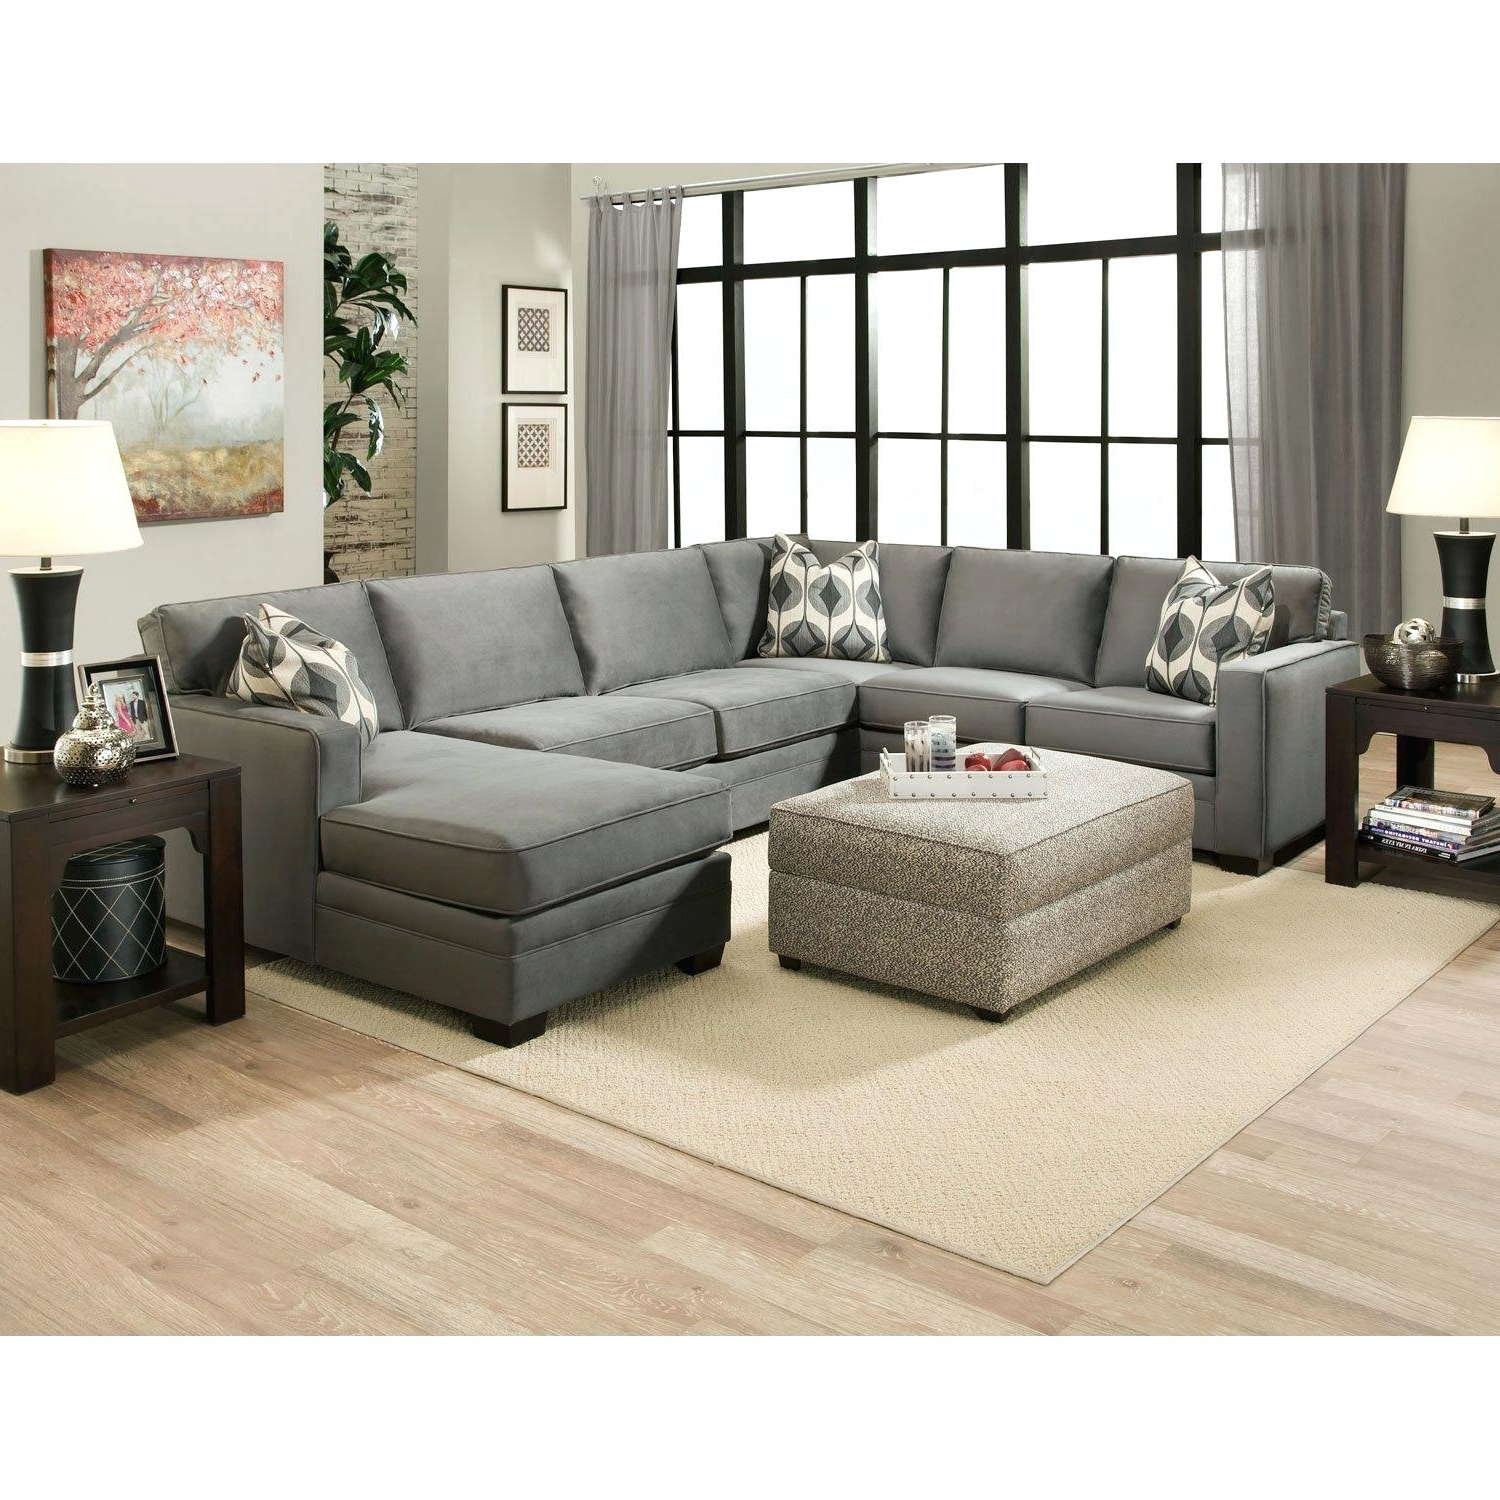 2018 Recliners Chairs & Sofa : 58 Things Flawless Leather Sectional Regarding Sectional Sofas At Edmonton (View 1 of 15)